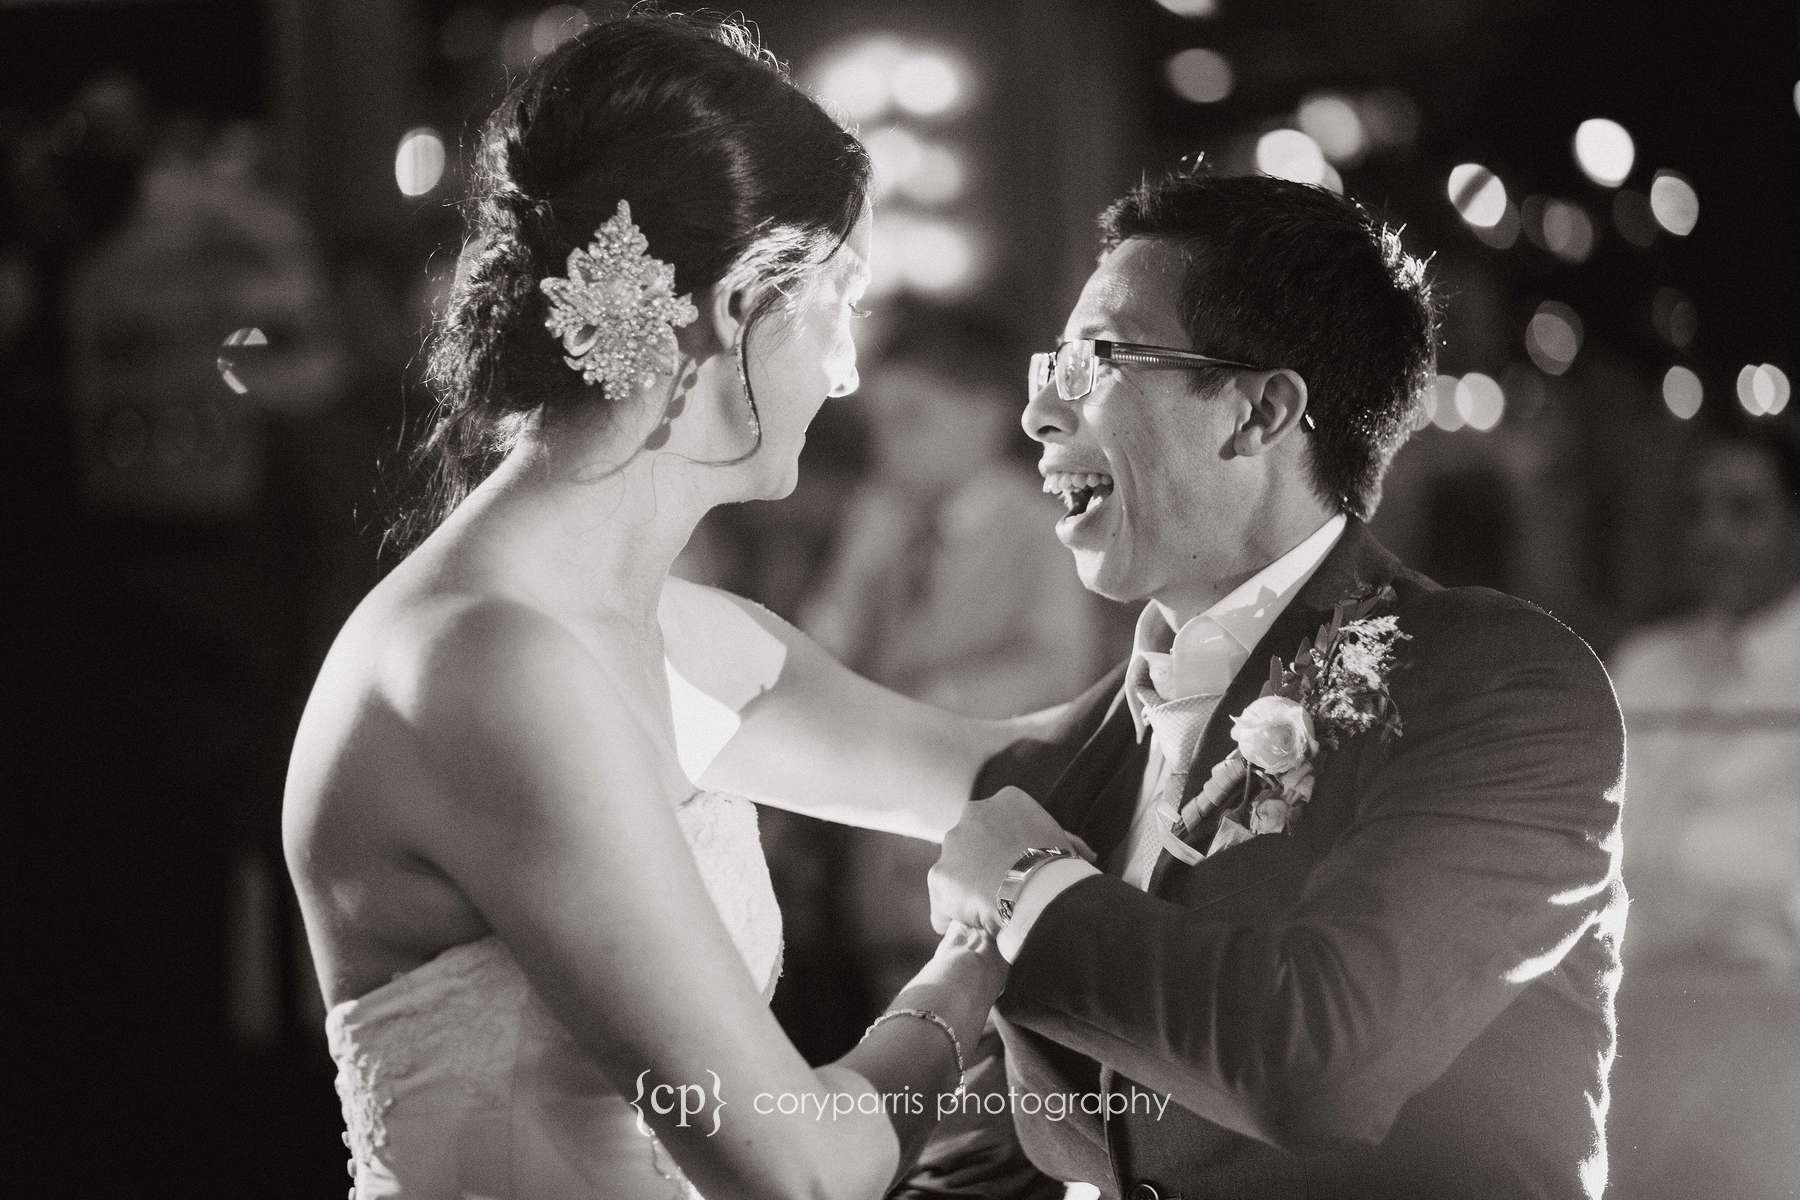 Vinh laughing during their first dance.